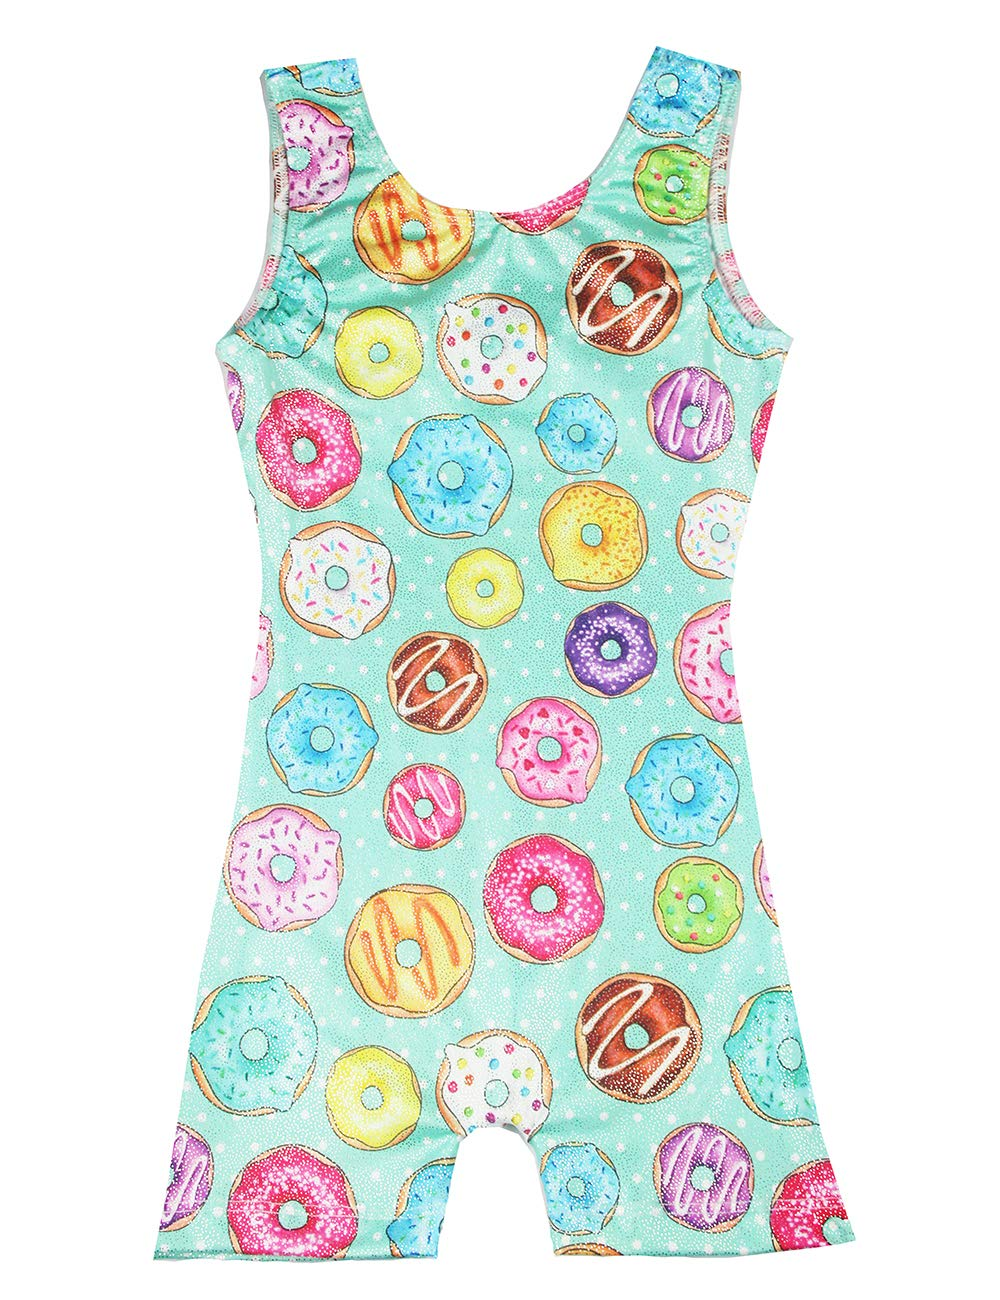 Gymnastics Leotards for Little Girls 5t 6t Sparkly Kids Dancewear Activewear Quick Dry One-Piece Gymnastic Outfits Swimwear by Midout